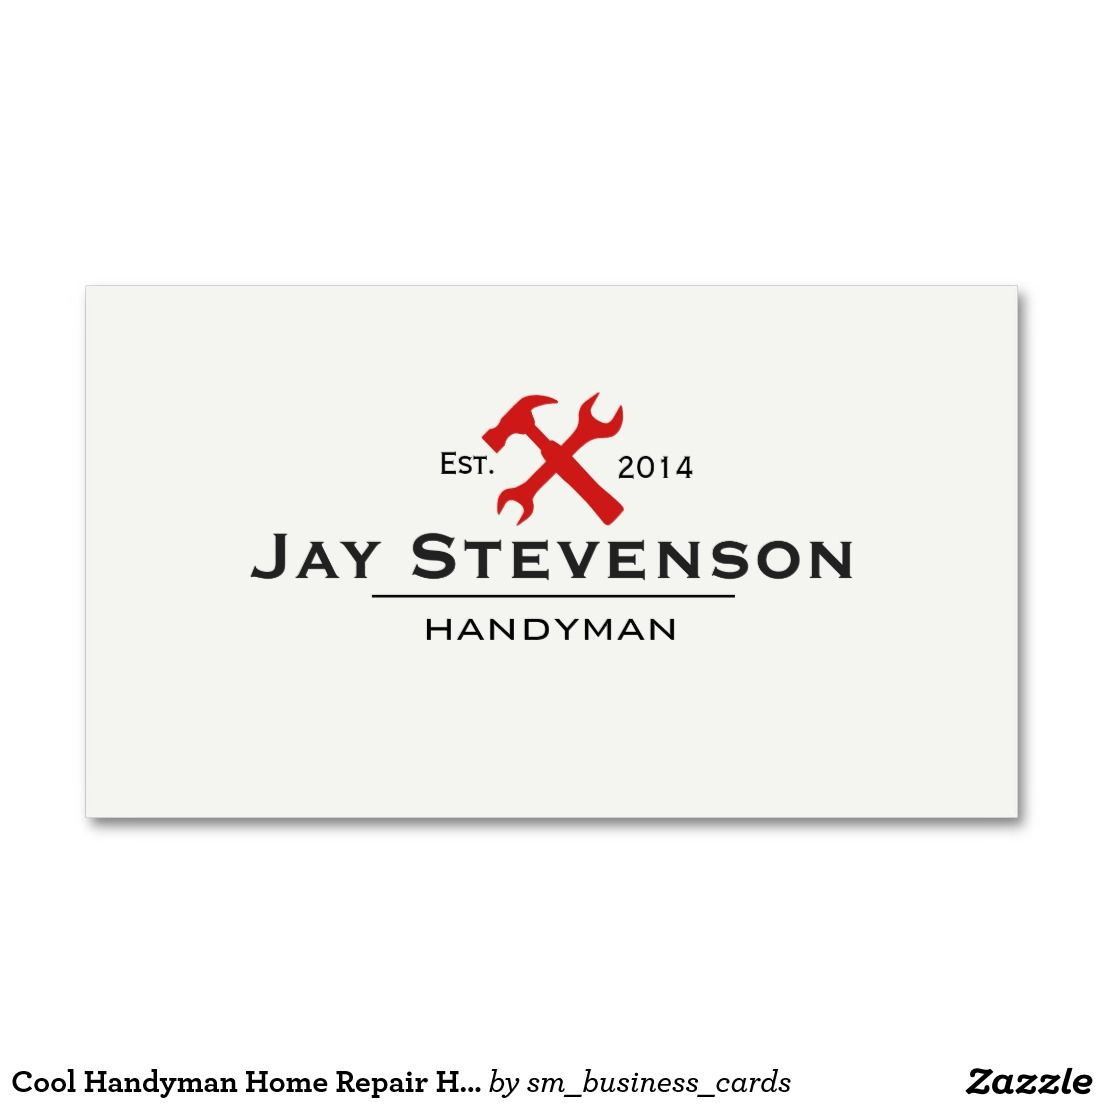 Cool Handyman Home Repair Hammer and Wrench Logo Business Card ...